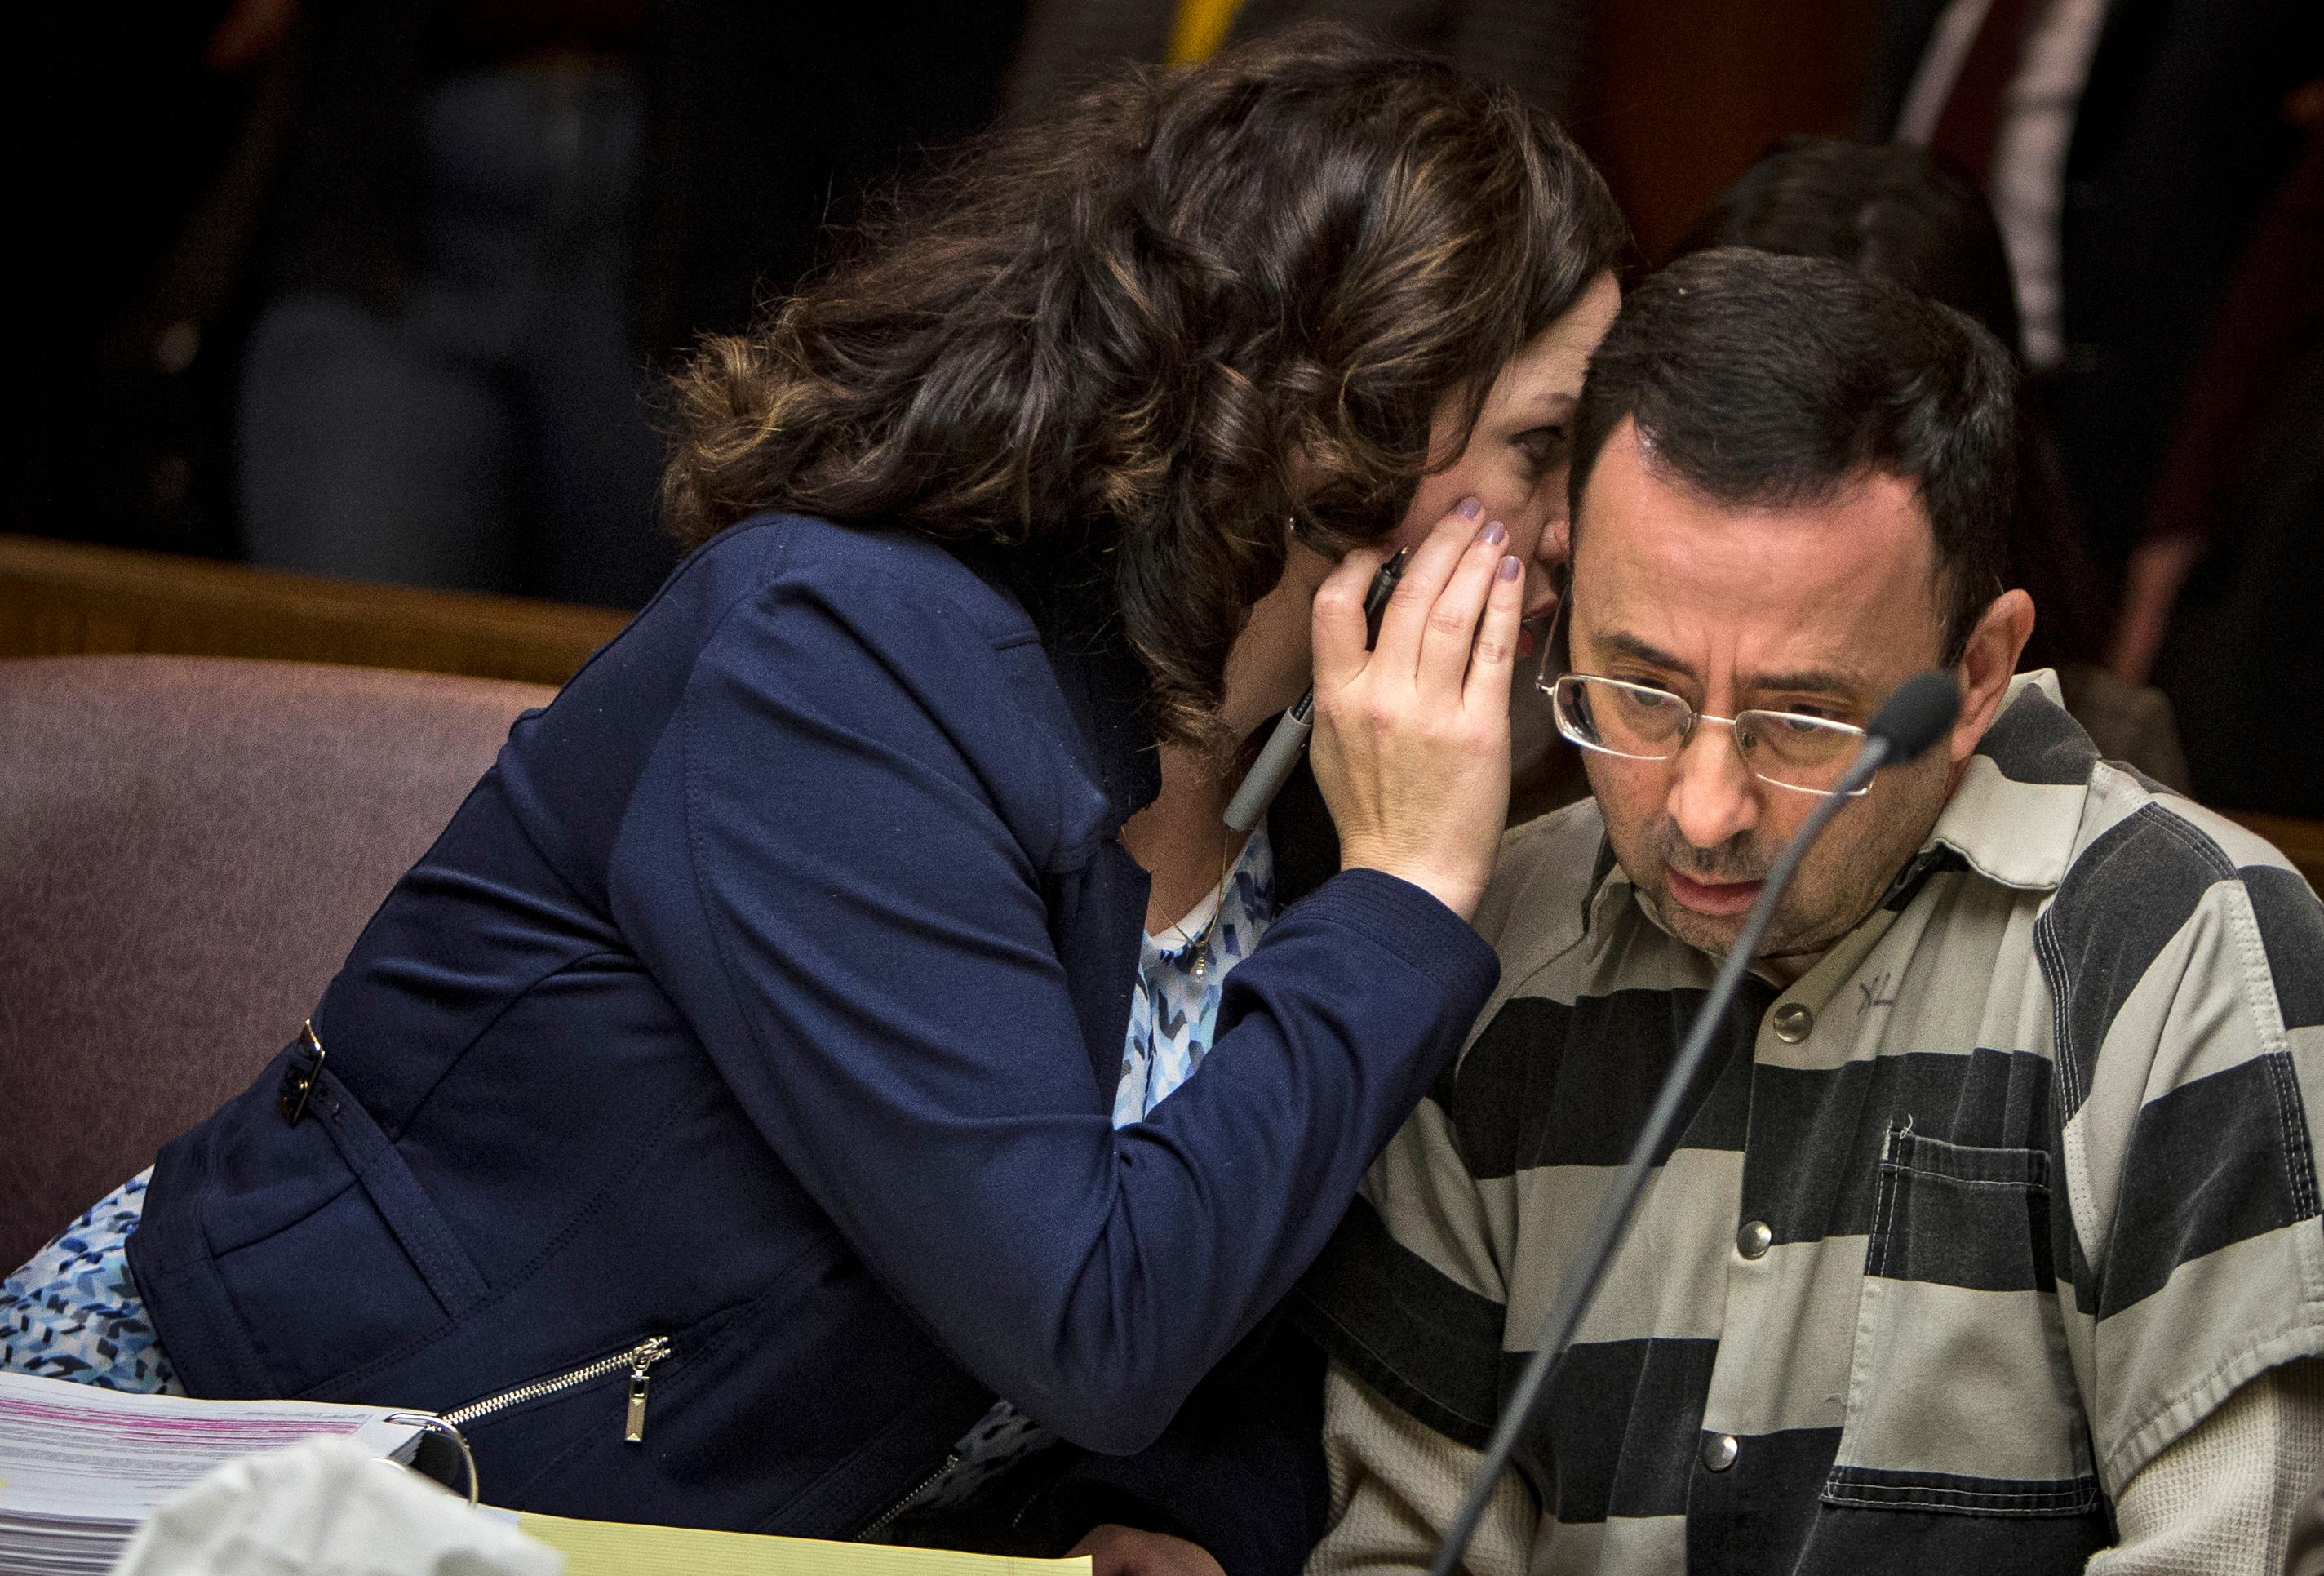 Shannon Smith, attorney for Dr. Larry Nassar whispers to her client during a preliminary hearing Friday, May 12, 2017, in Mason, Mich.. Nassar, a former Michigan State University doctor who also worked for USA Gymnastics, faces sexual assault charges charges. (Matthew Dae Smith/Lansing State Journal via AP)